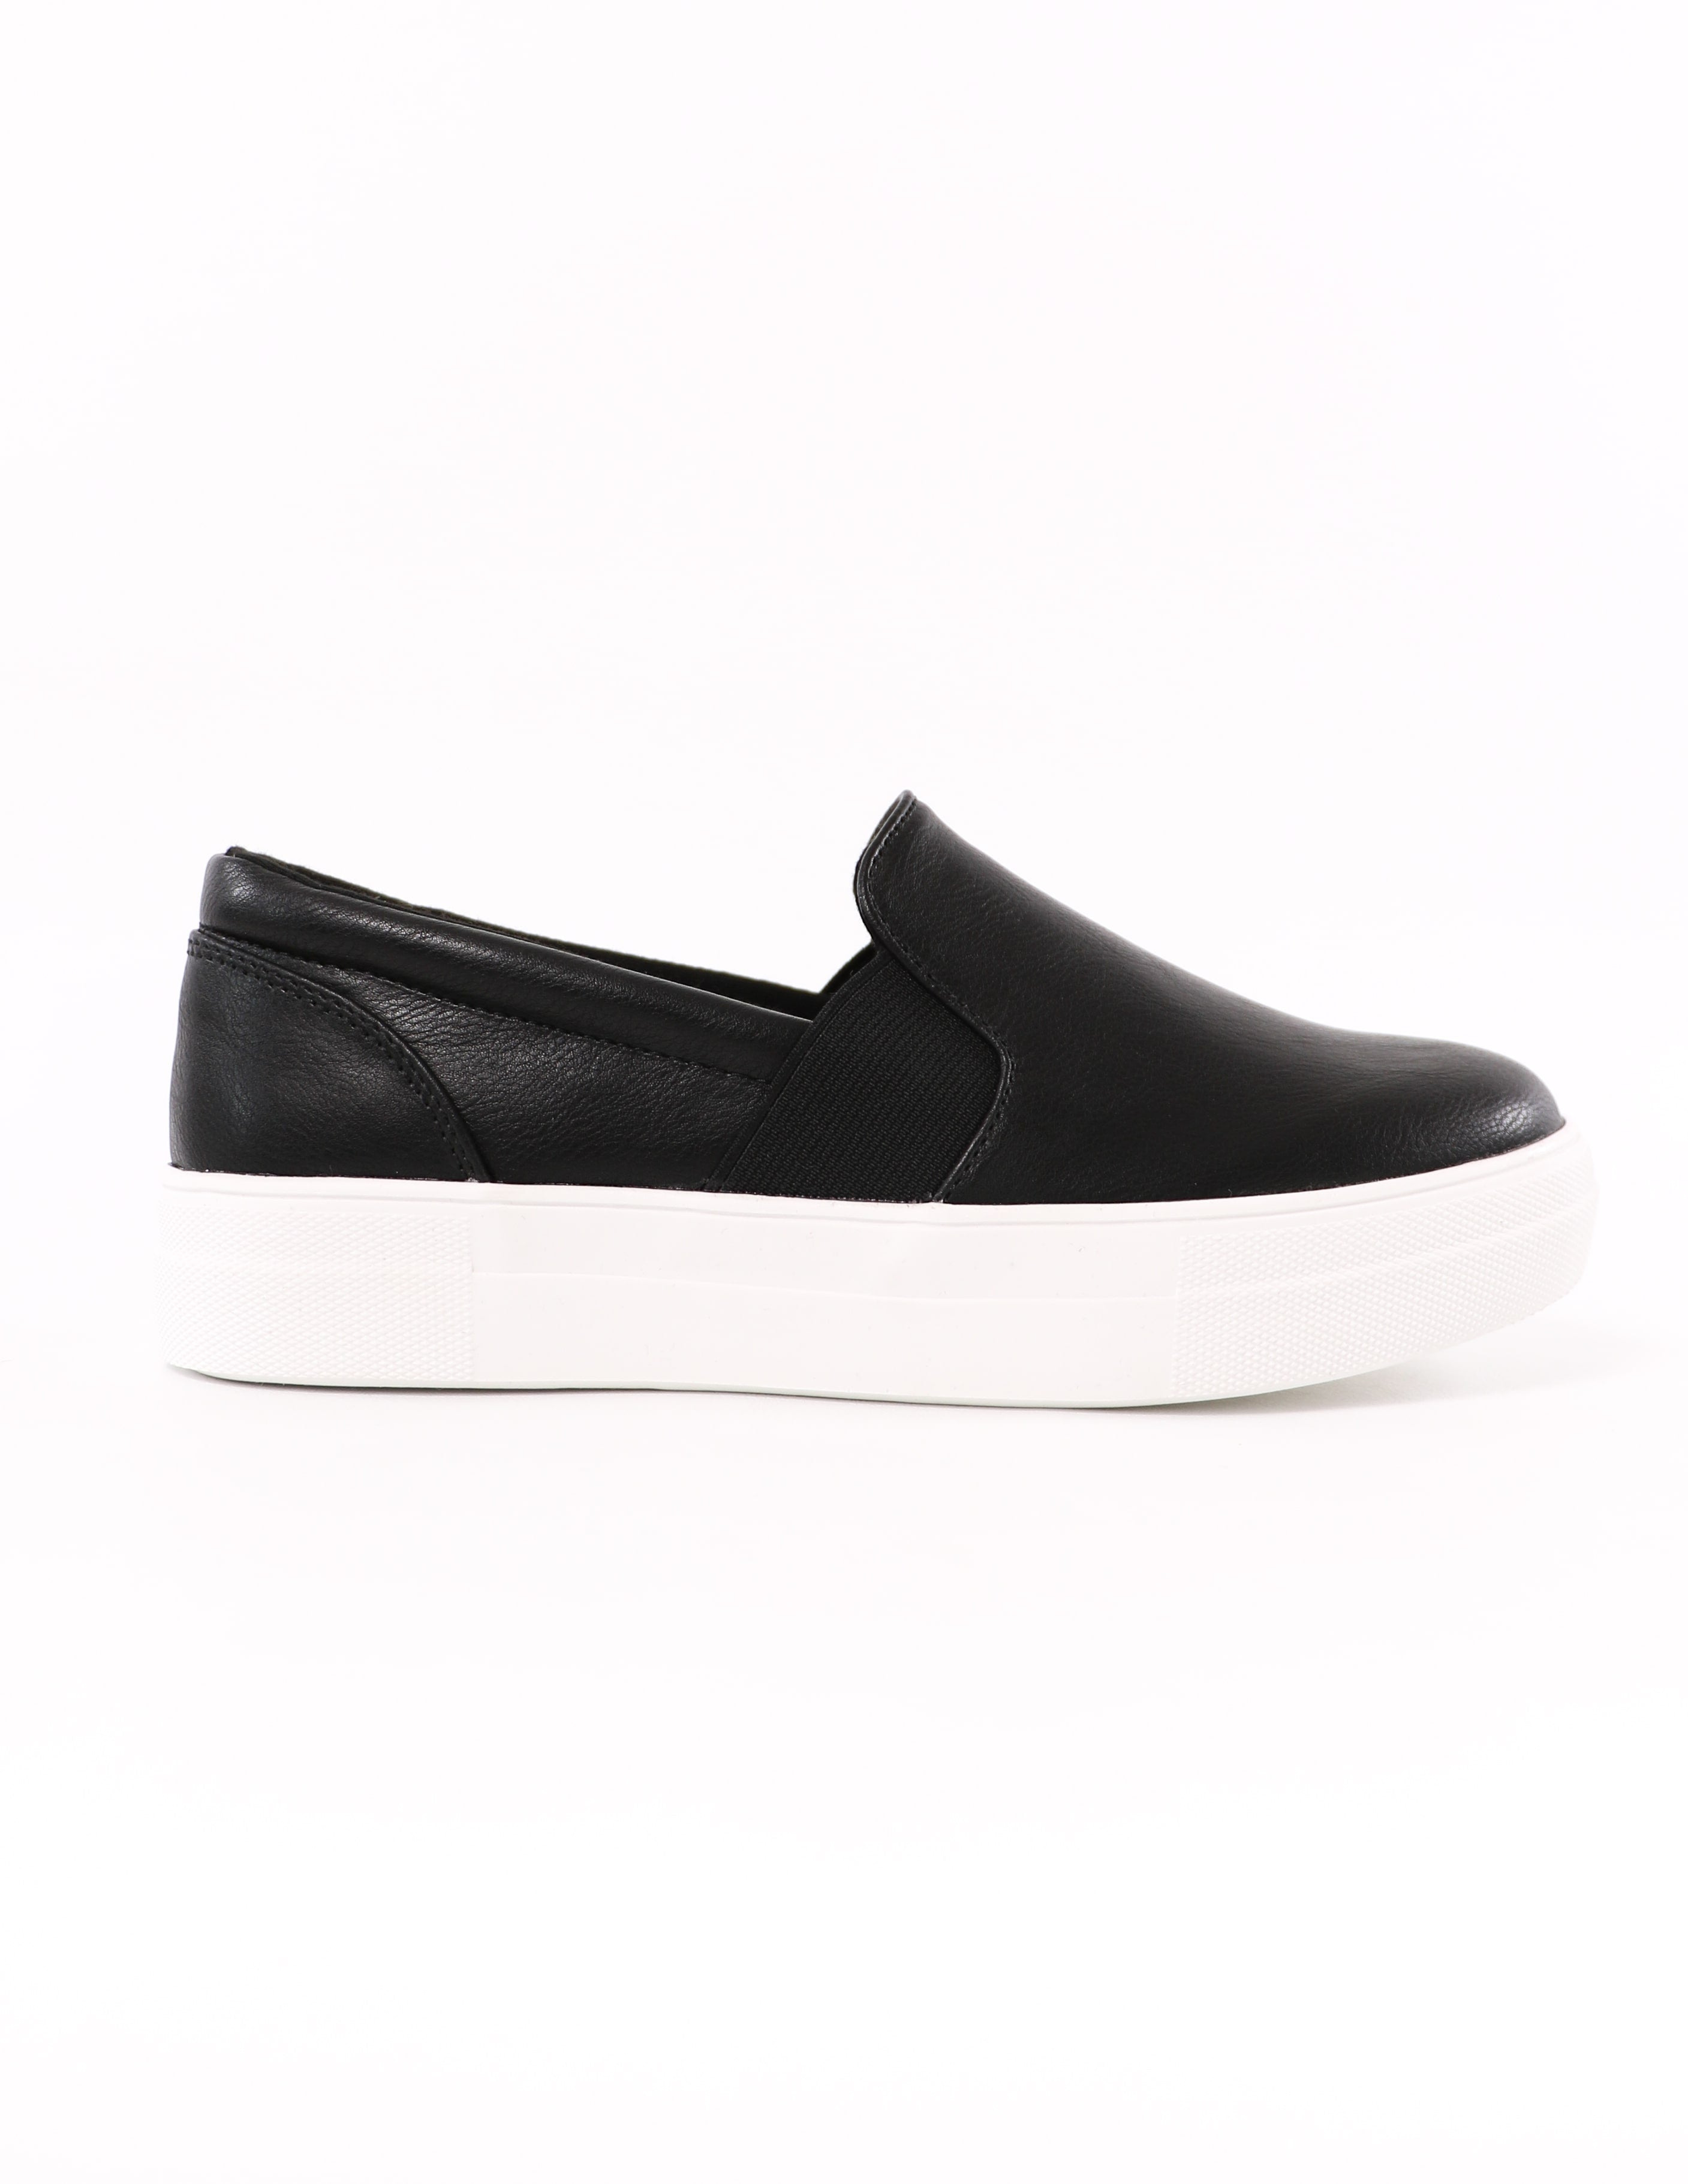 side of the black soda kickin' it sole-o slip on rubber sneaker - elle bleu shoes